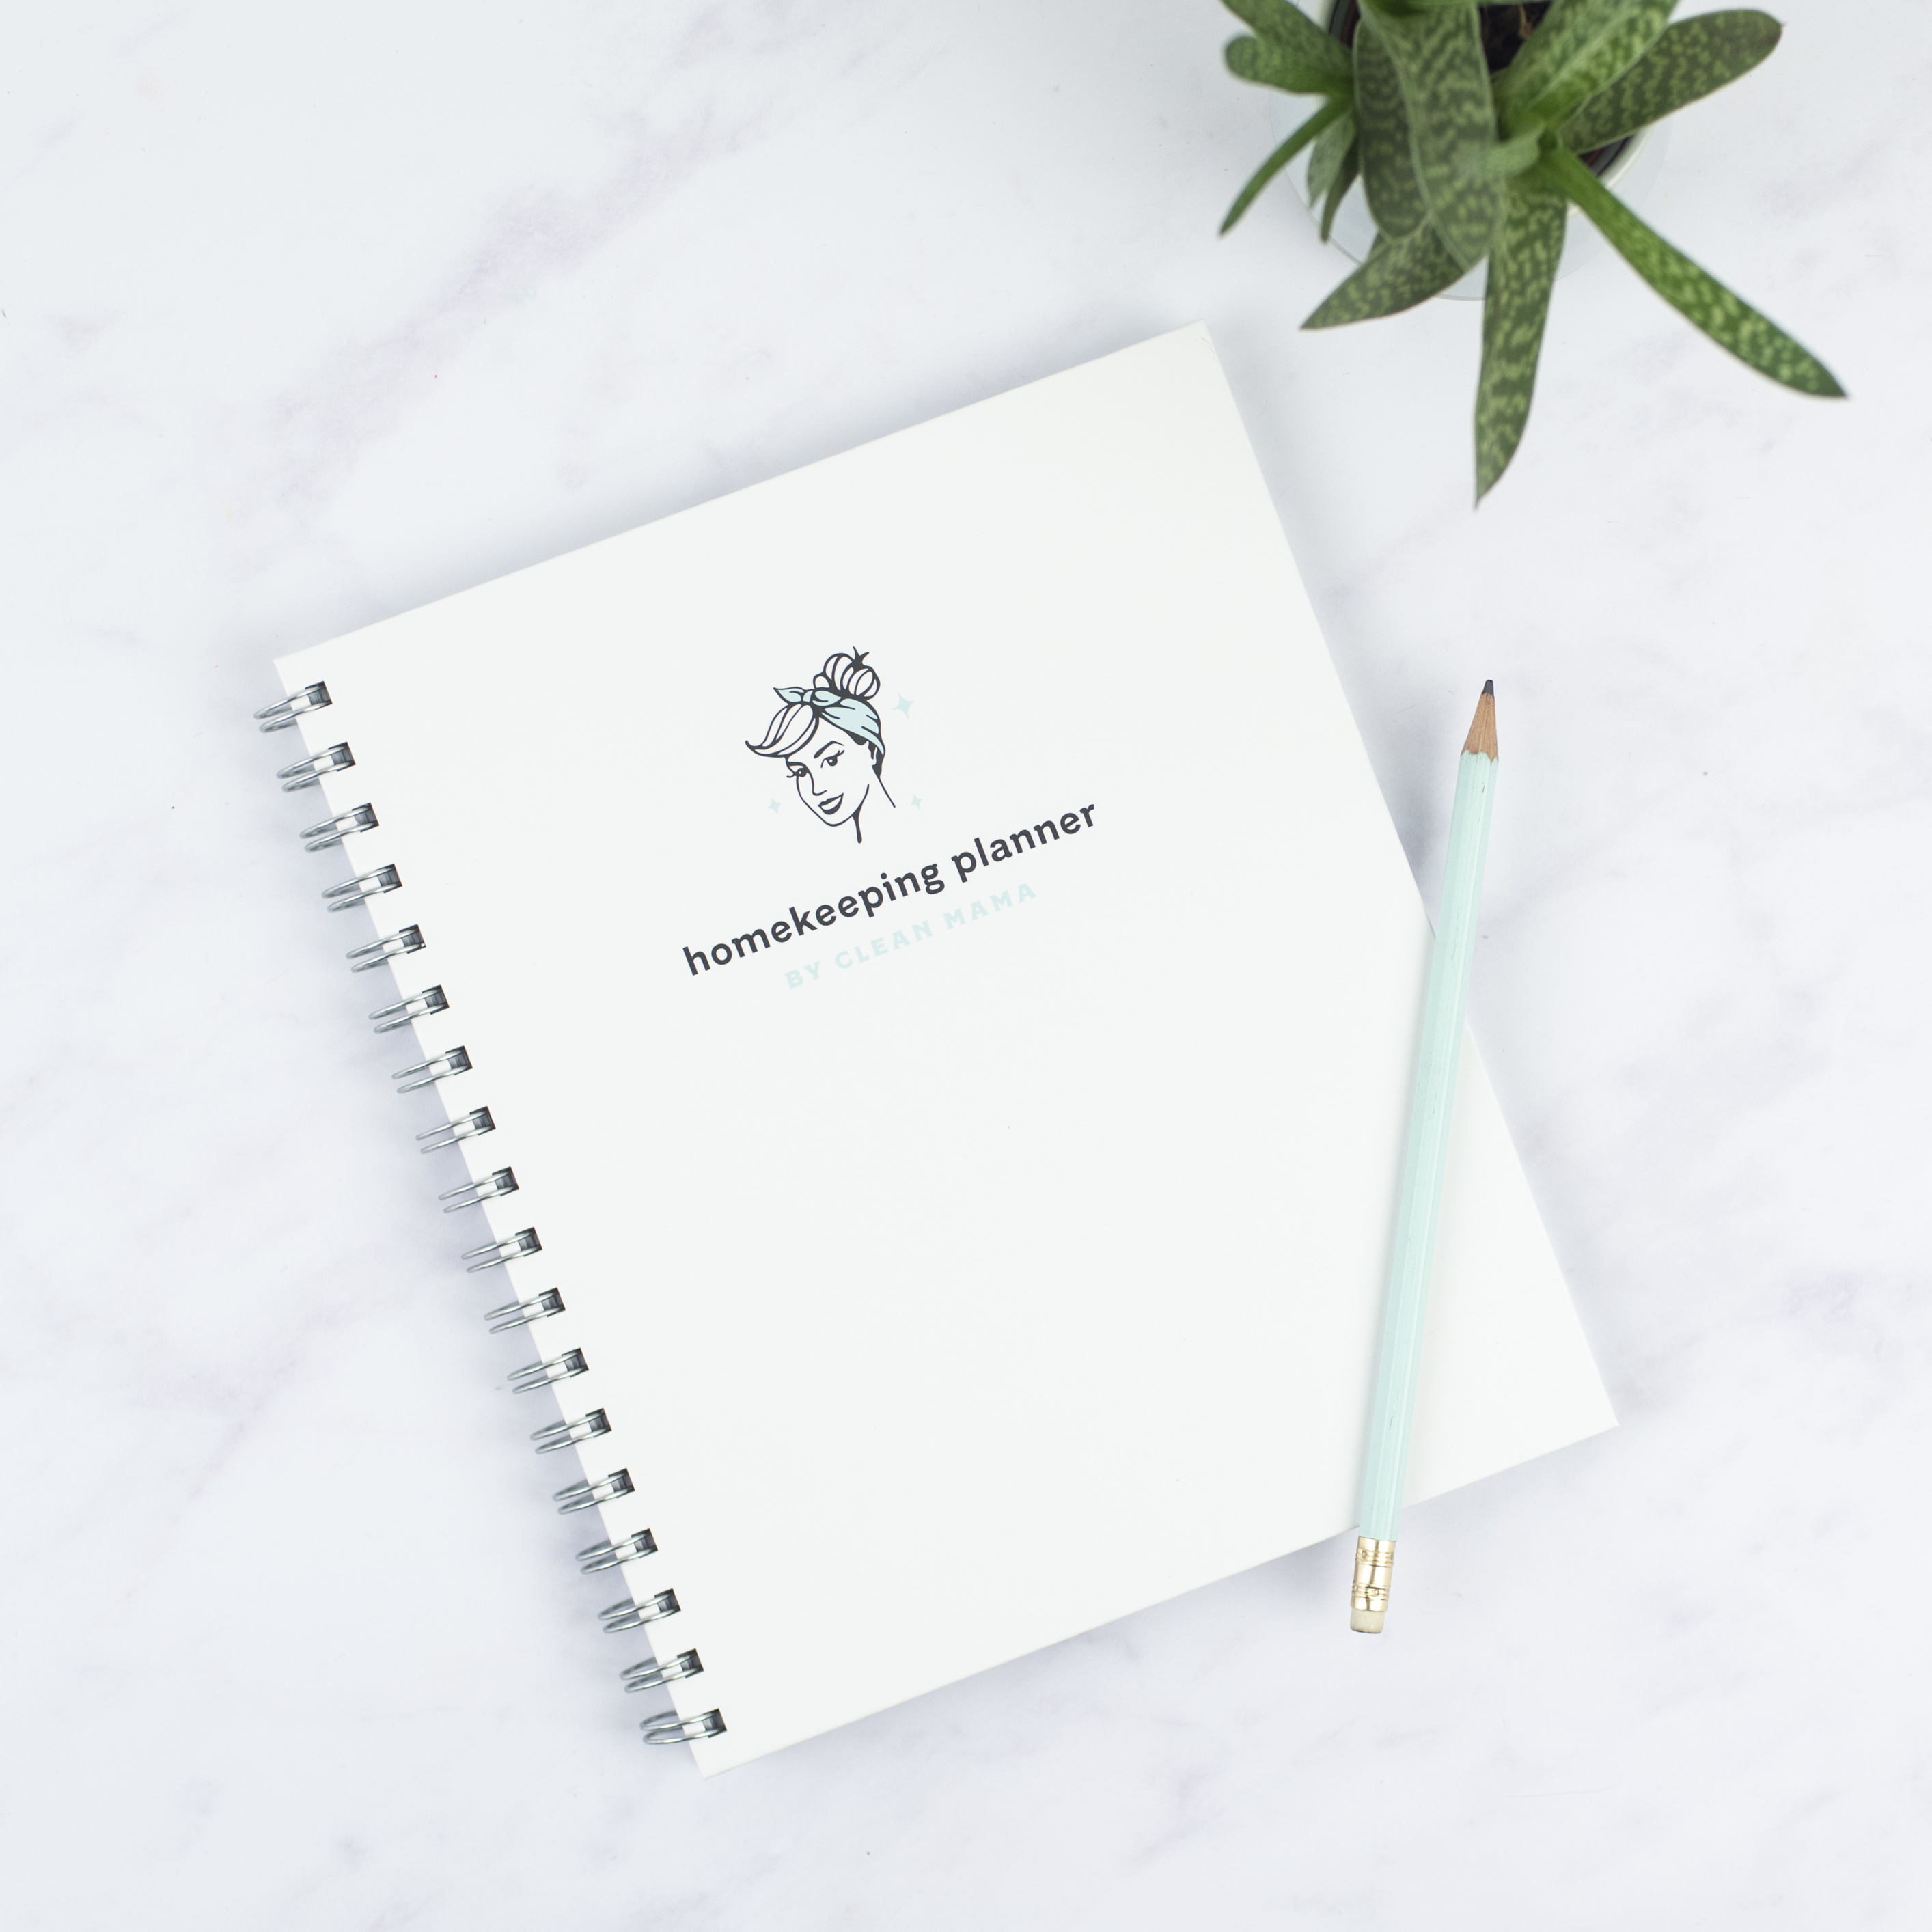 The 2020 Clean Mama Homekeeping Planner